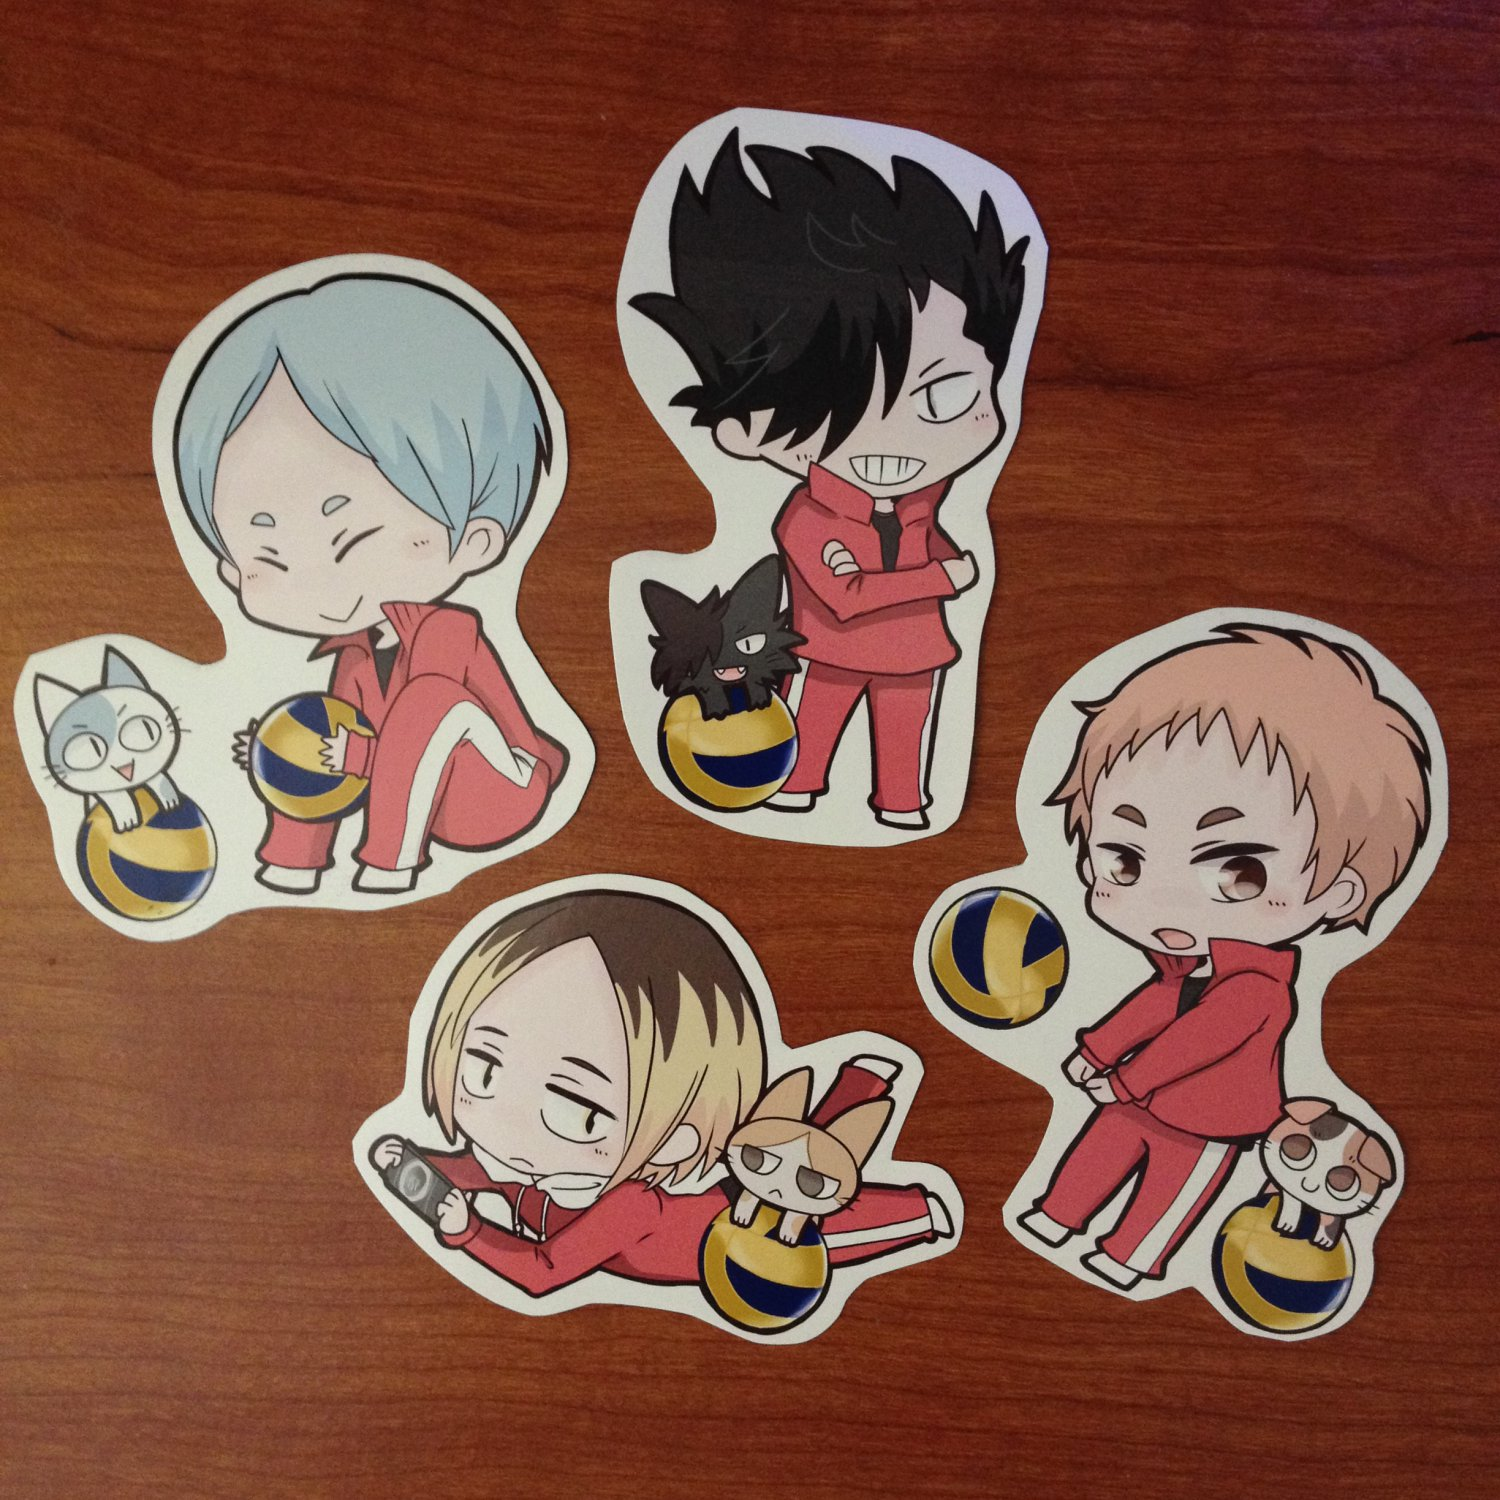 HQ_fanart Sticker set